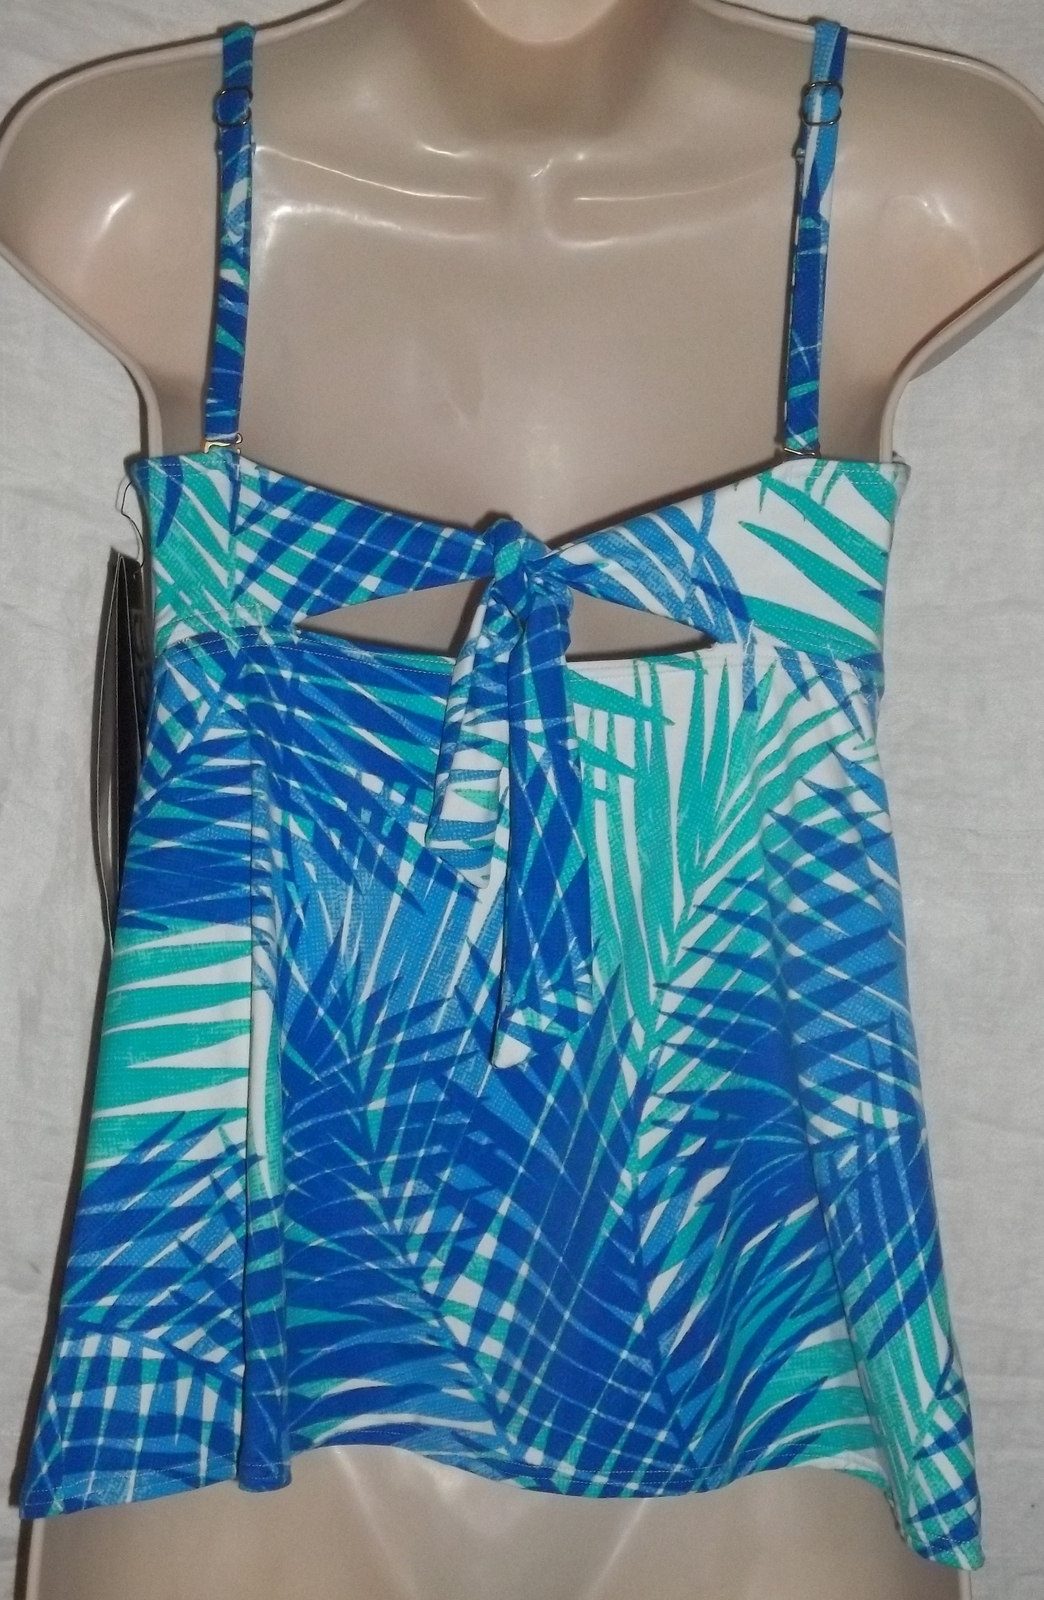 COCO REEF FIVE WAY TANKINI,SIZE 32/34C image 4